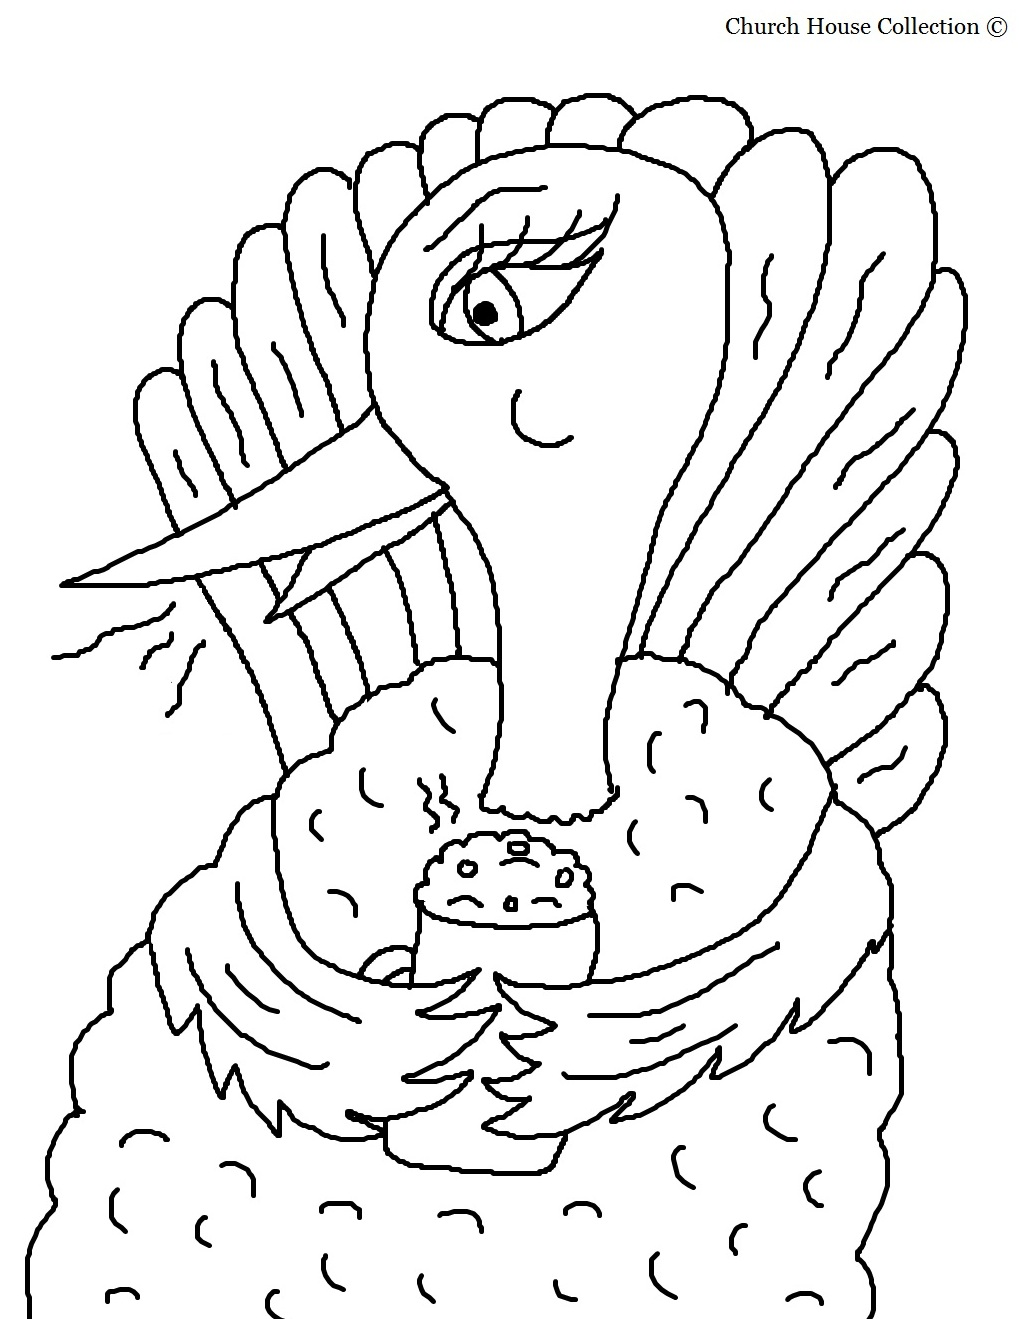 1019x1319 Turkey Drinking Hot Chocolate Coloring Page Turkey Maze Coloring